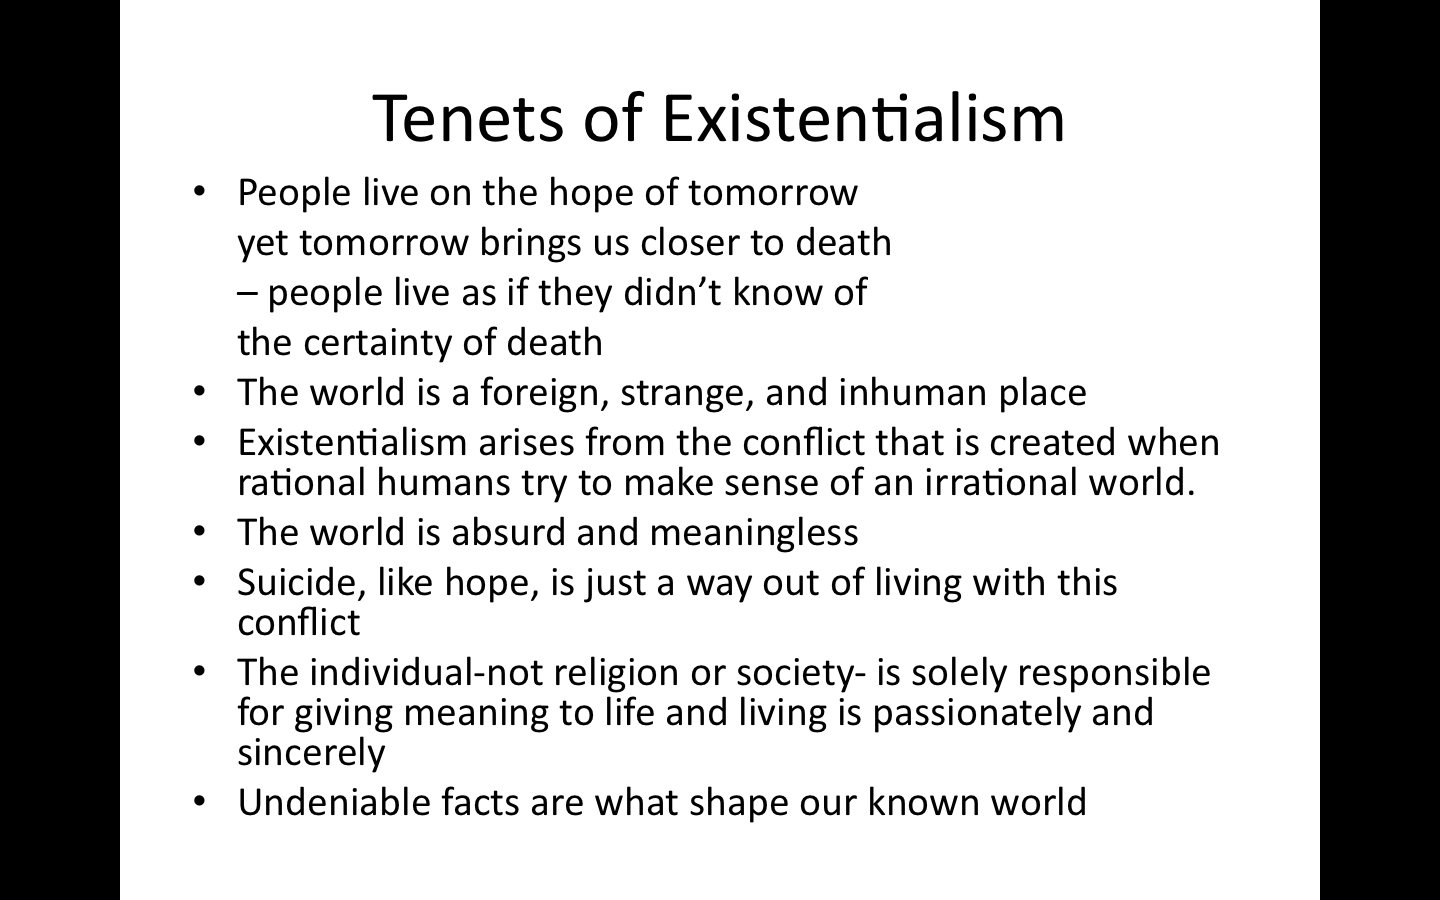 004 Essays In Existentialism Essay Example Tenets Of Outstanding Ao3 Jean Paul Sartre Pdf Full